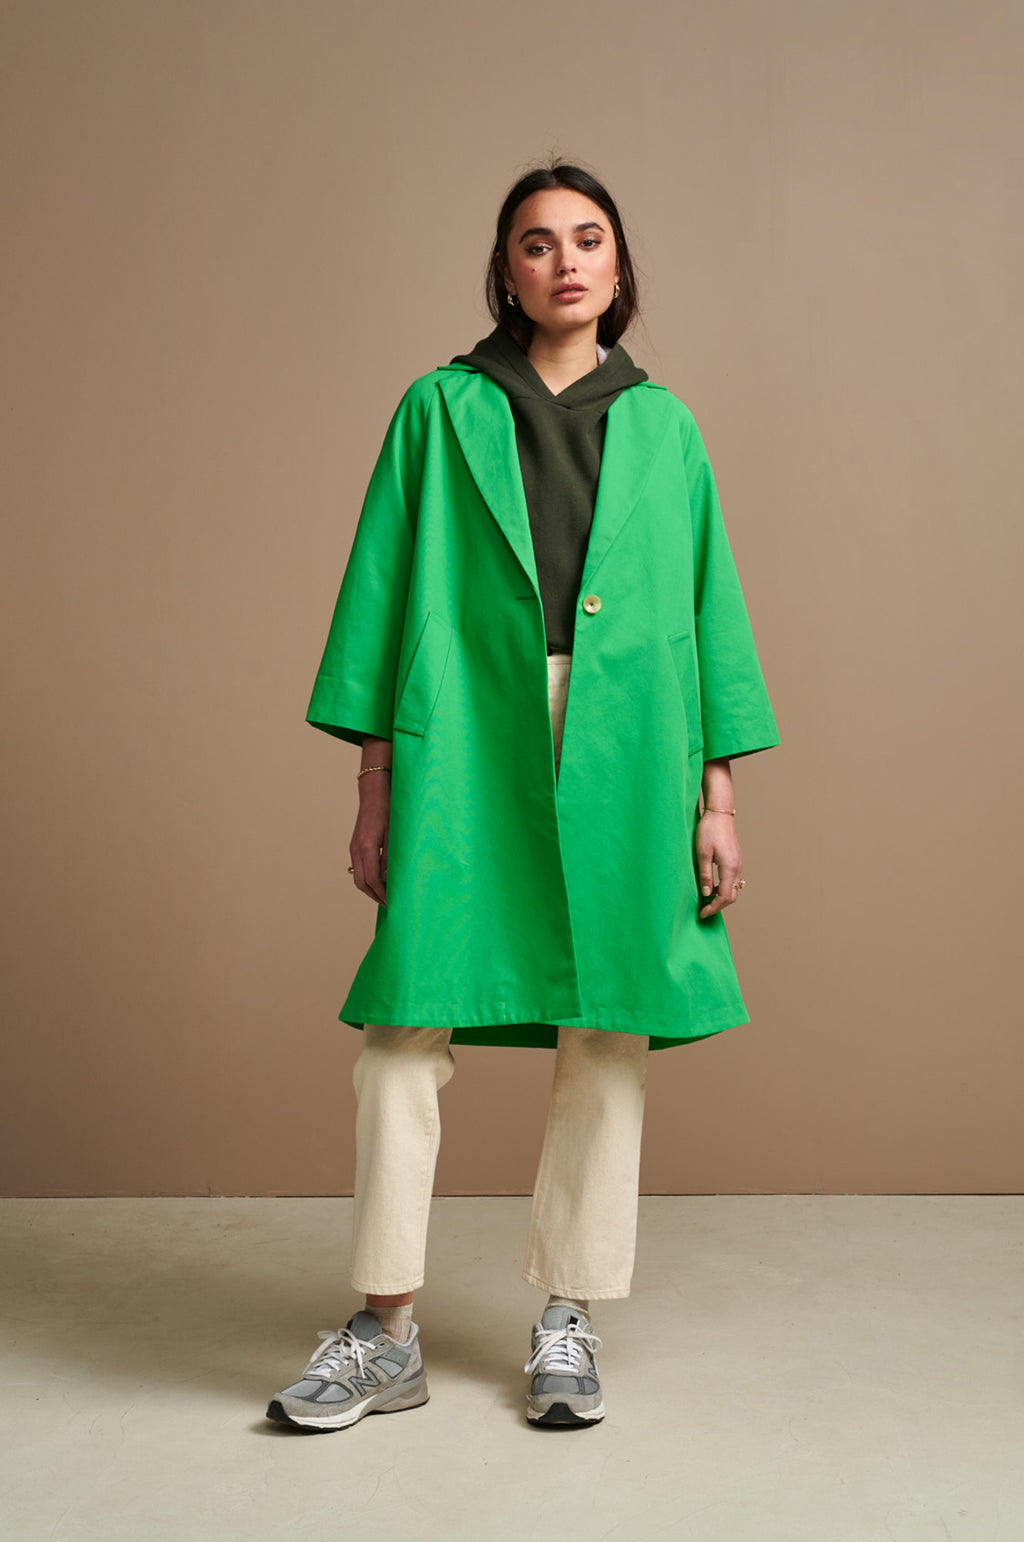 Veezy Coat in Clover